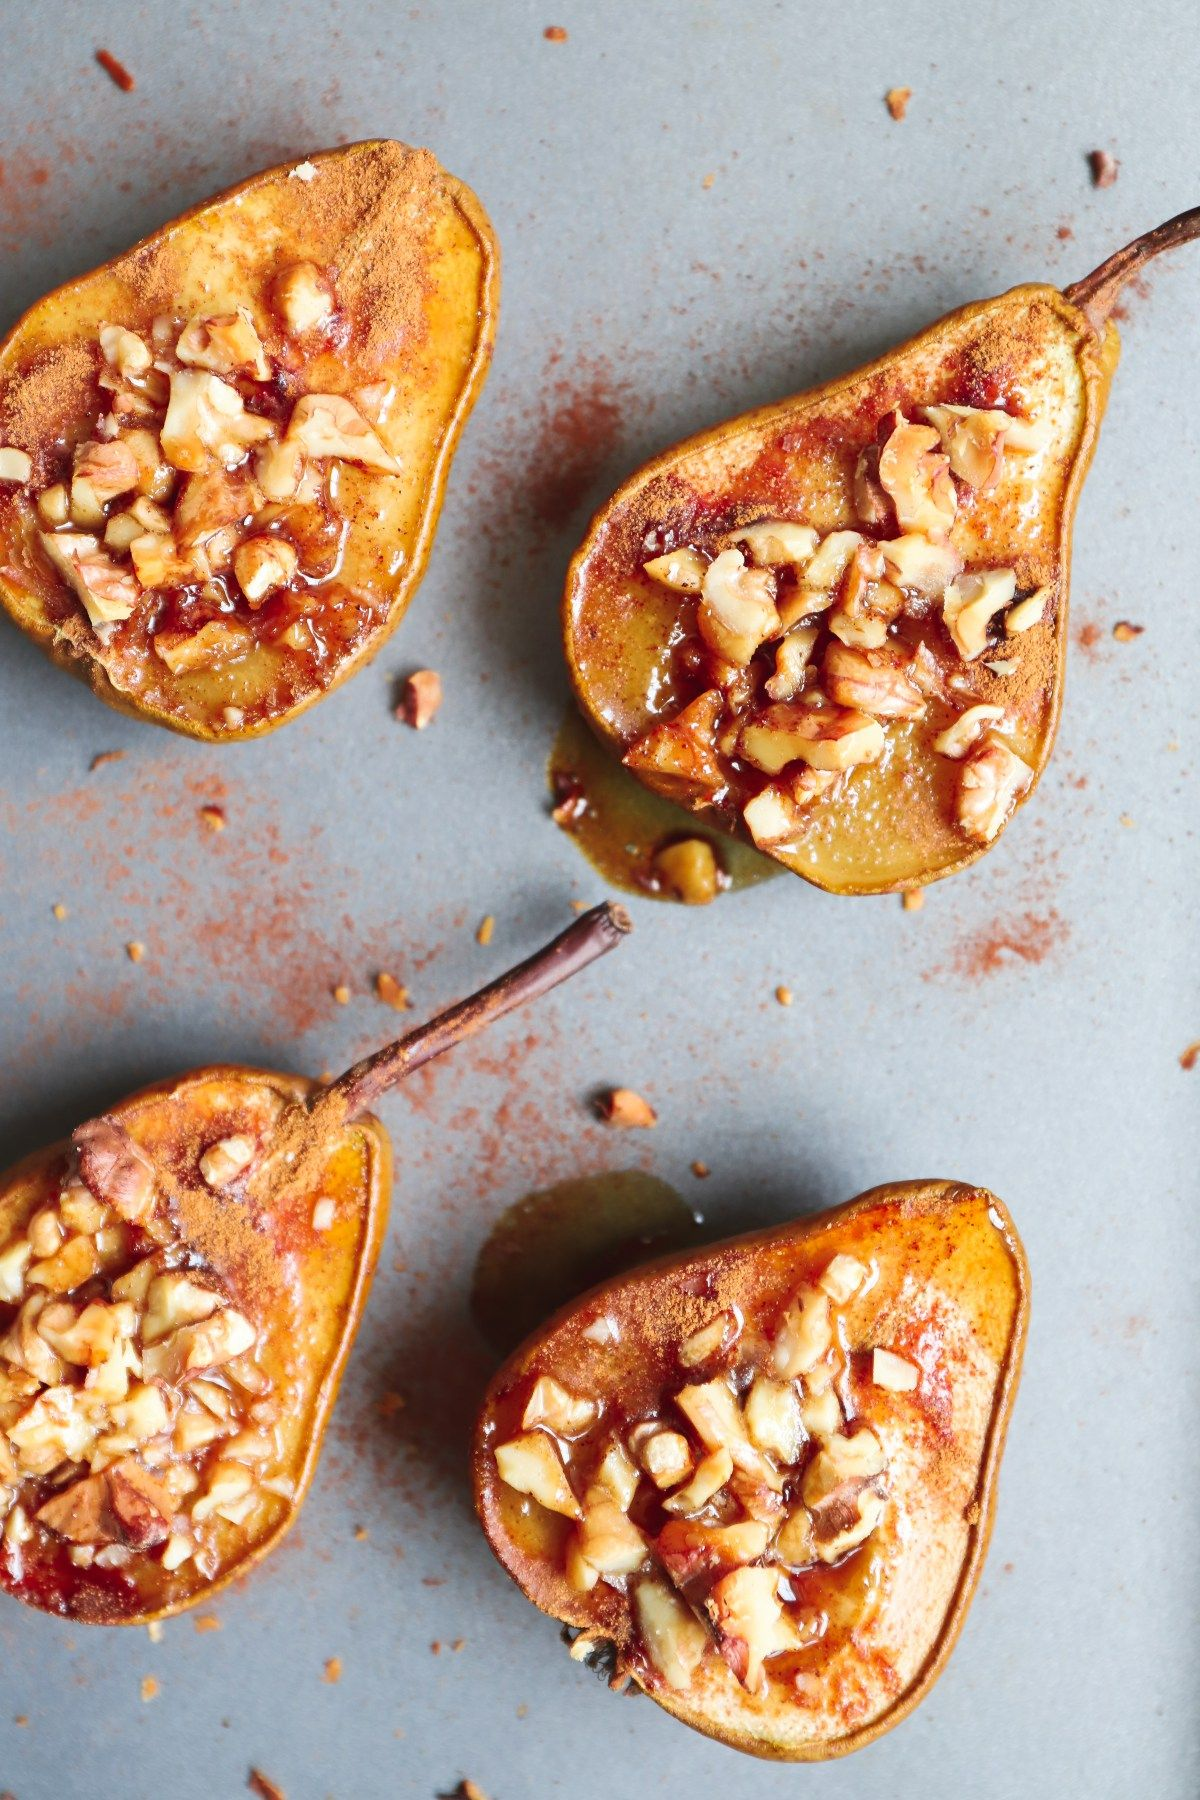 Baked Pears with Maple Syrup and Walnuts - Spoonfu